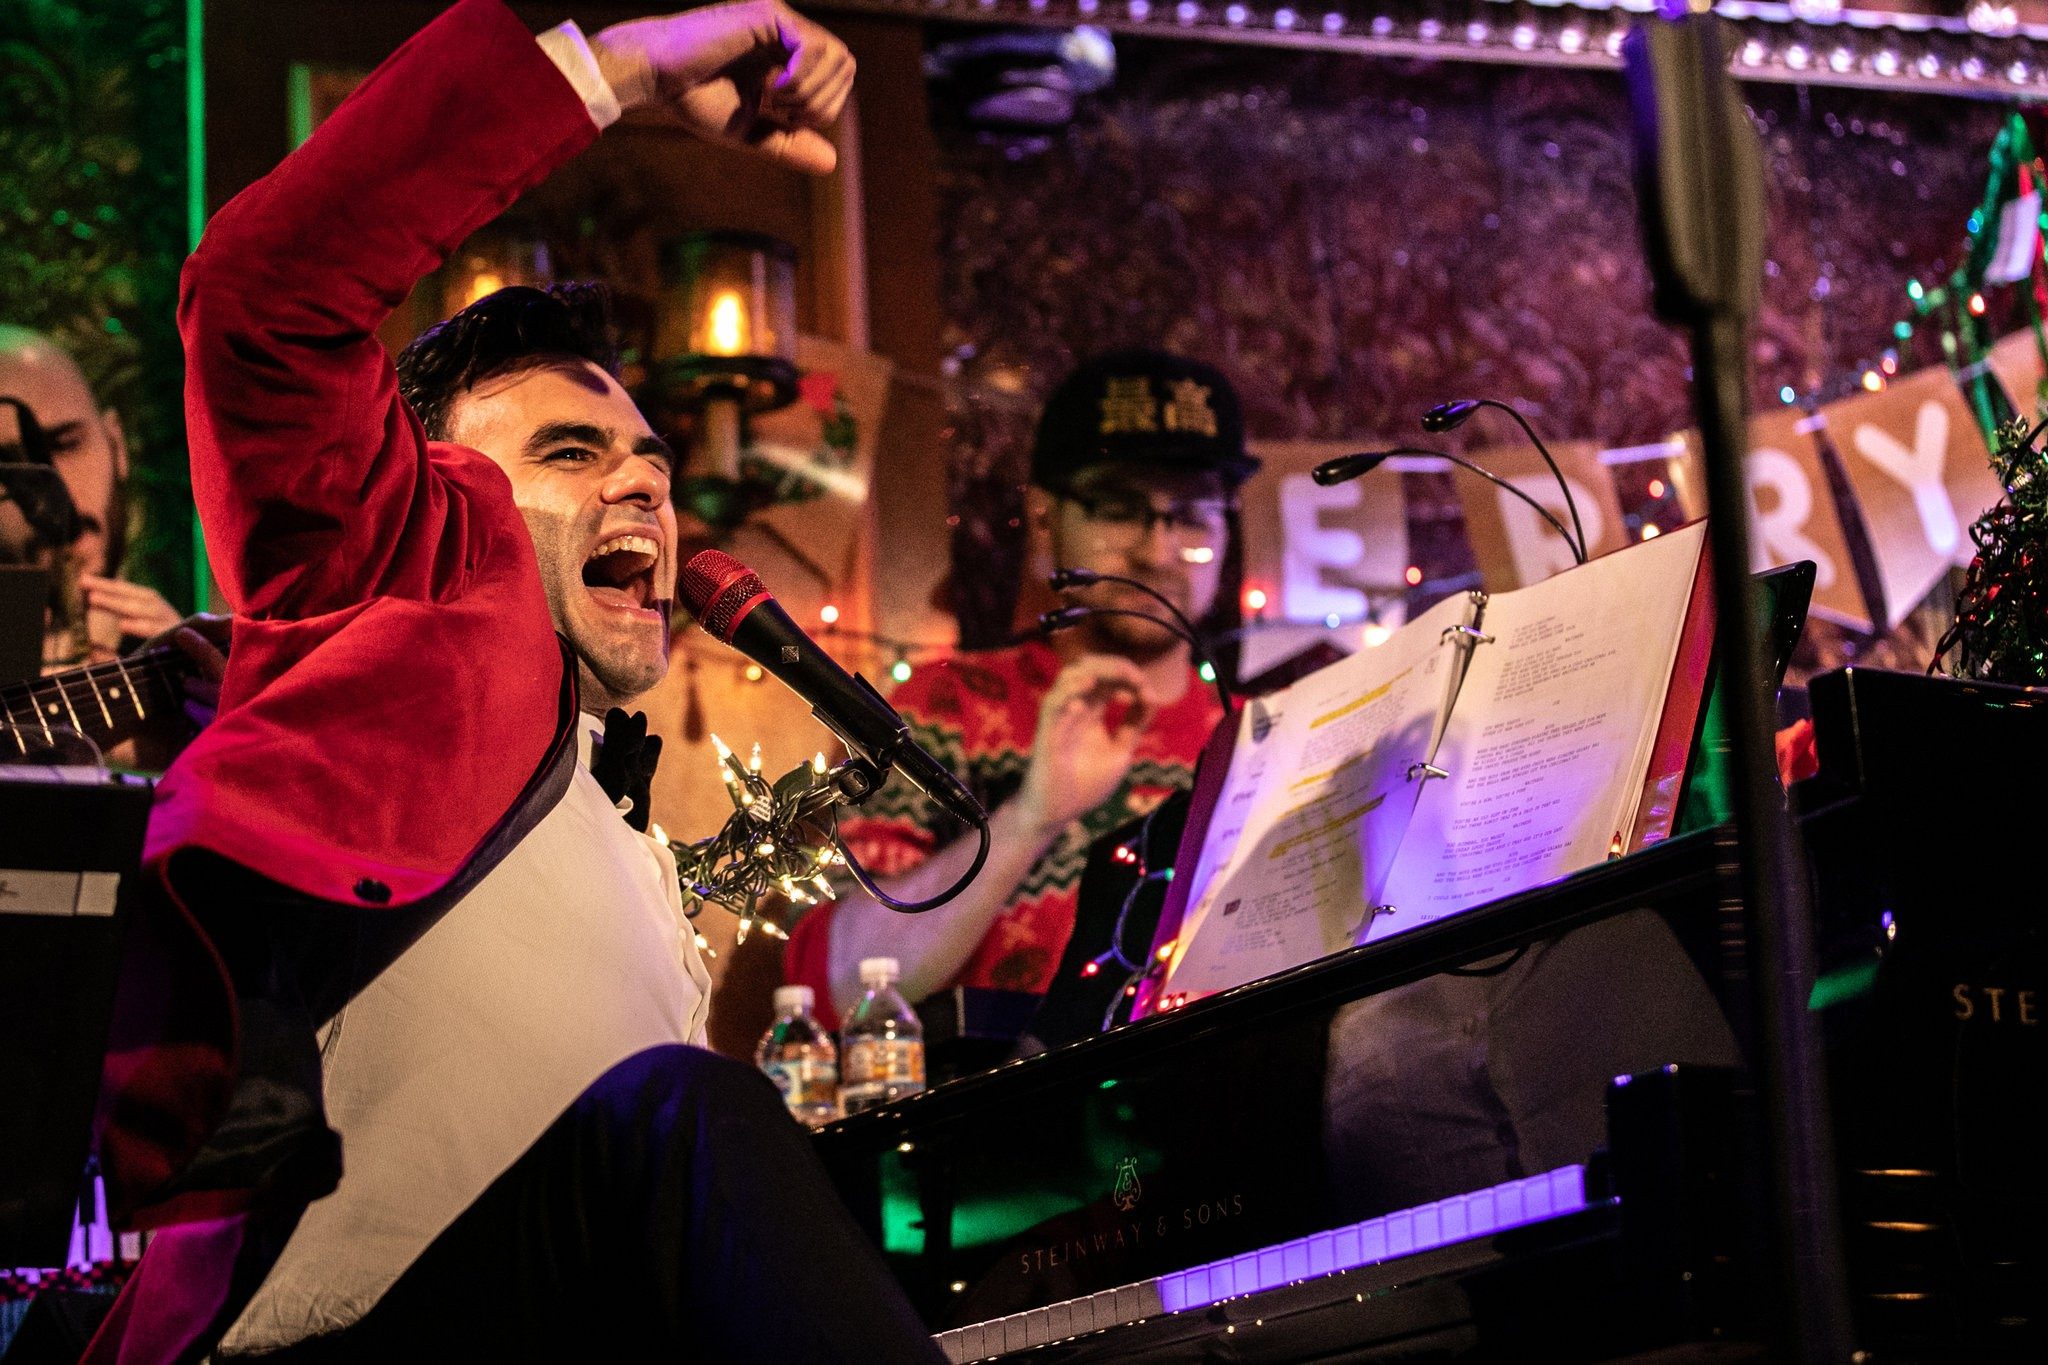 Joe Iconis at his annual Christmas show at Feinstein's/54 Below, which brings together his regular collaborators, many of whom, like him, have been waiting for their break in New York theater. Credit Jeenah Moon for The New York Times